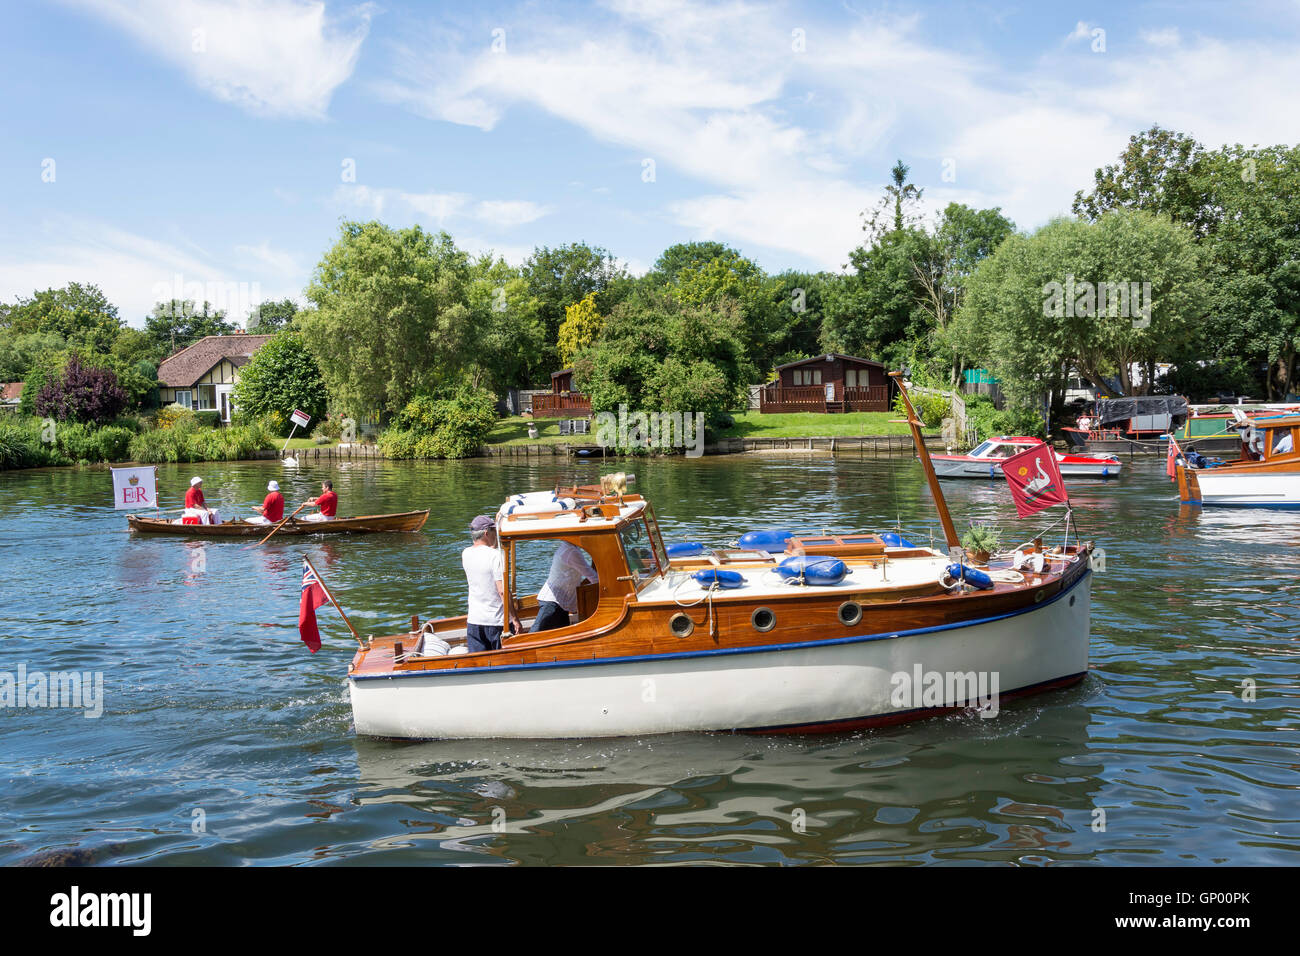 Swan Upping boat and skiff on Thames River at Lalham Reach, Laleham, Surrey, England, United Kingdom - Stock Image